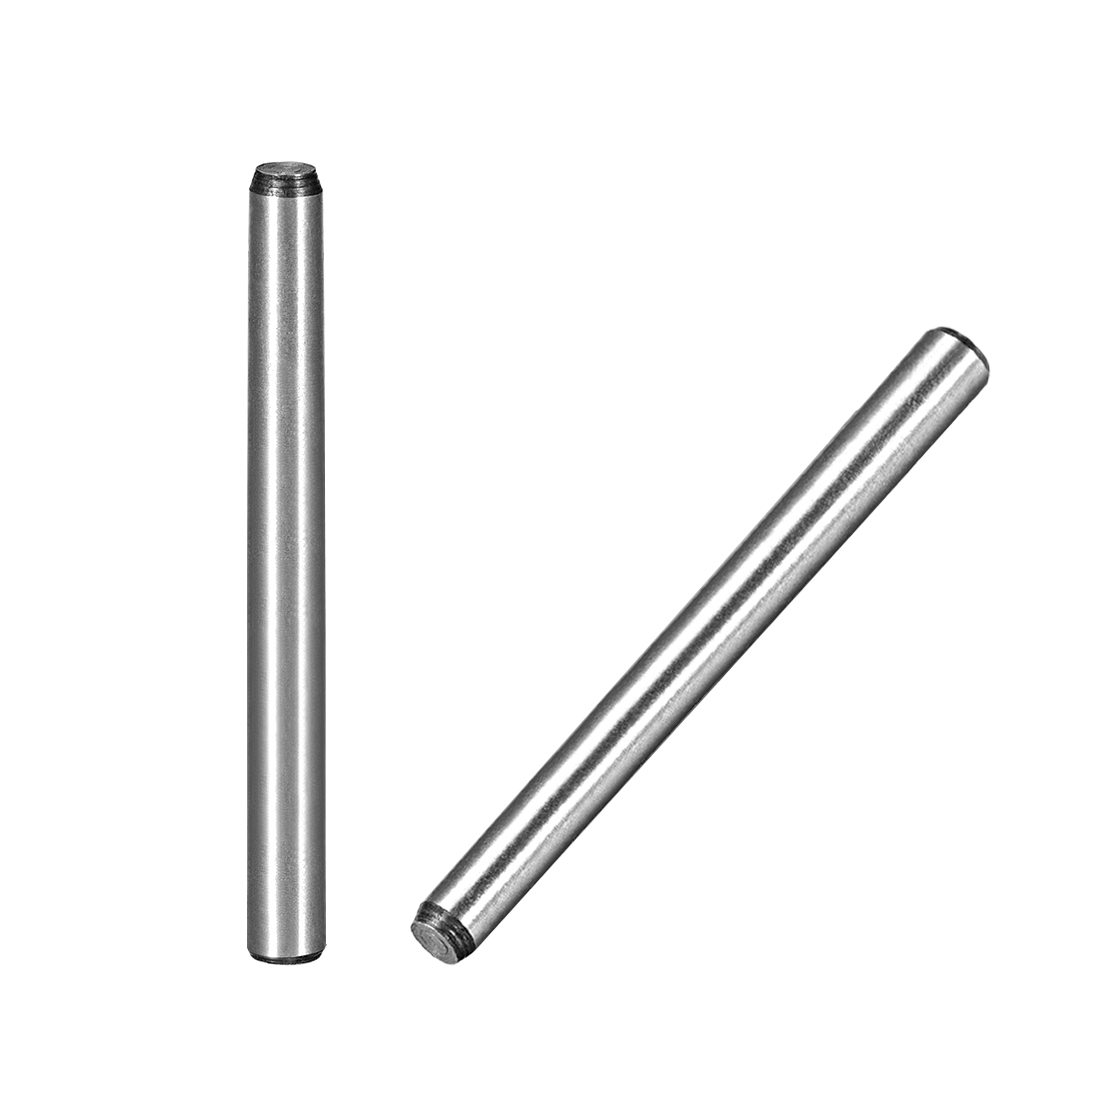 45# Carbon Steel GB117 80mm Length 6mm Small End Diameter 1:50 Taper Pin 5Pcs